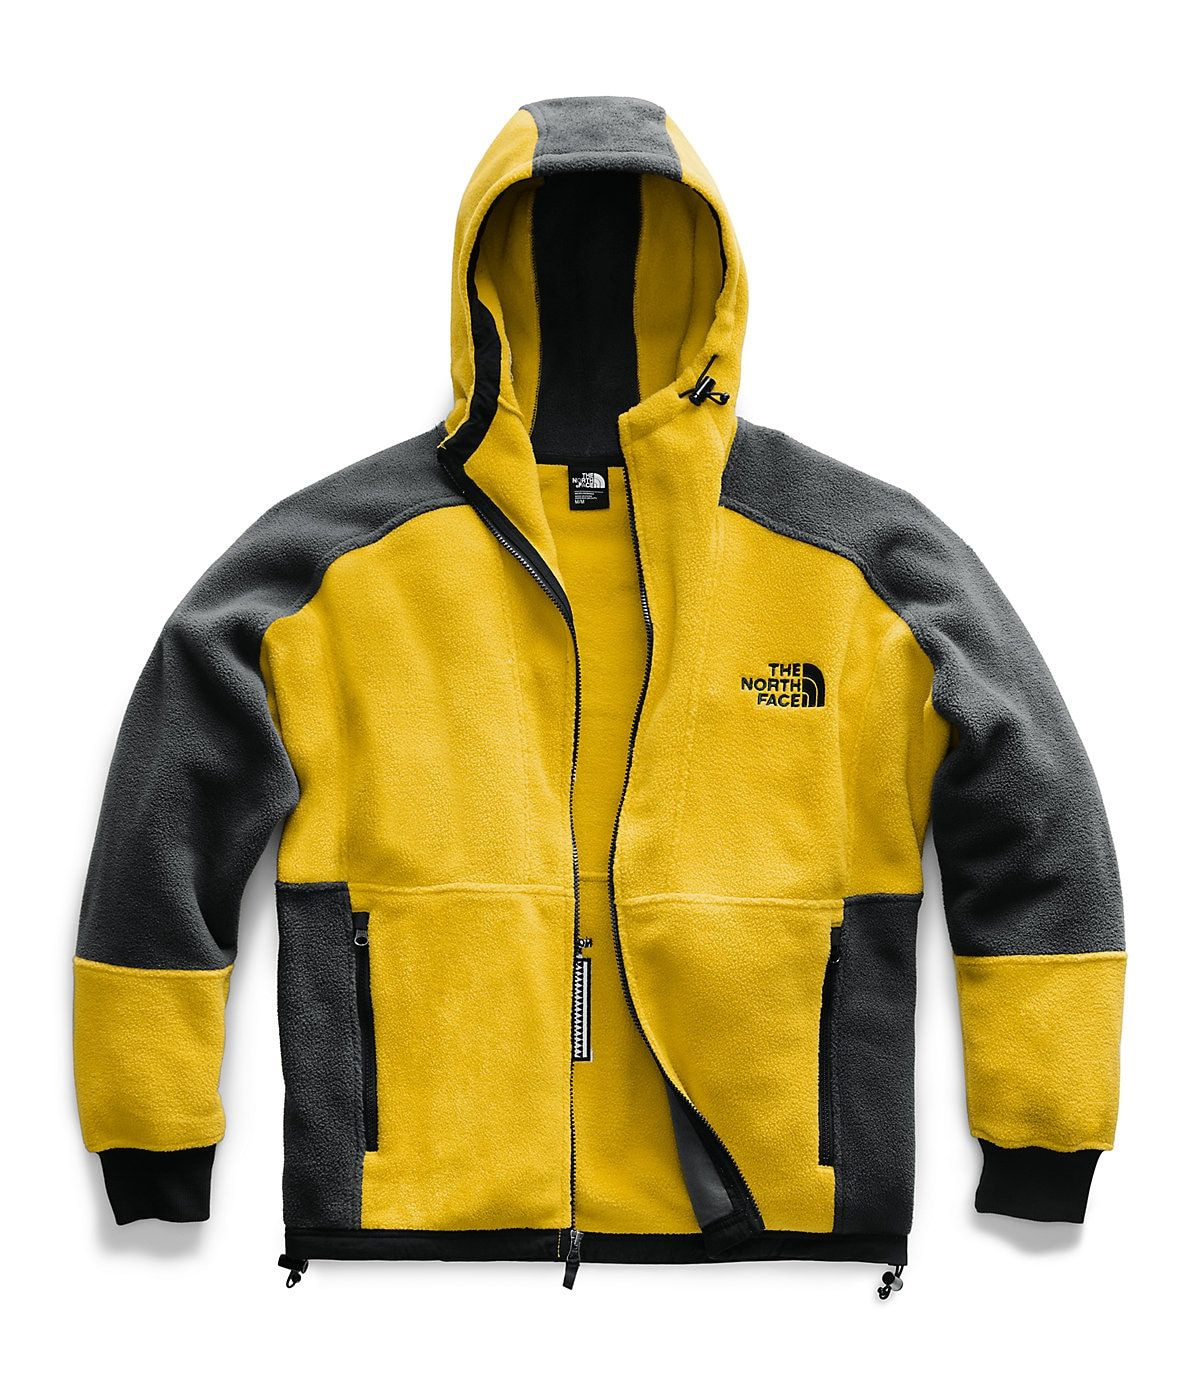 94 Rage Classic Fleece Hoodie The North Face Fleece Hoodie Hoodies Fleece [ 1396 x 1200 Pixel ]